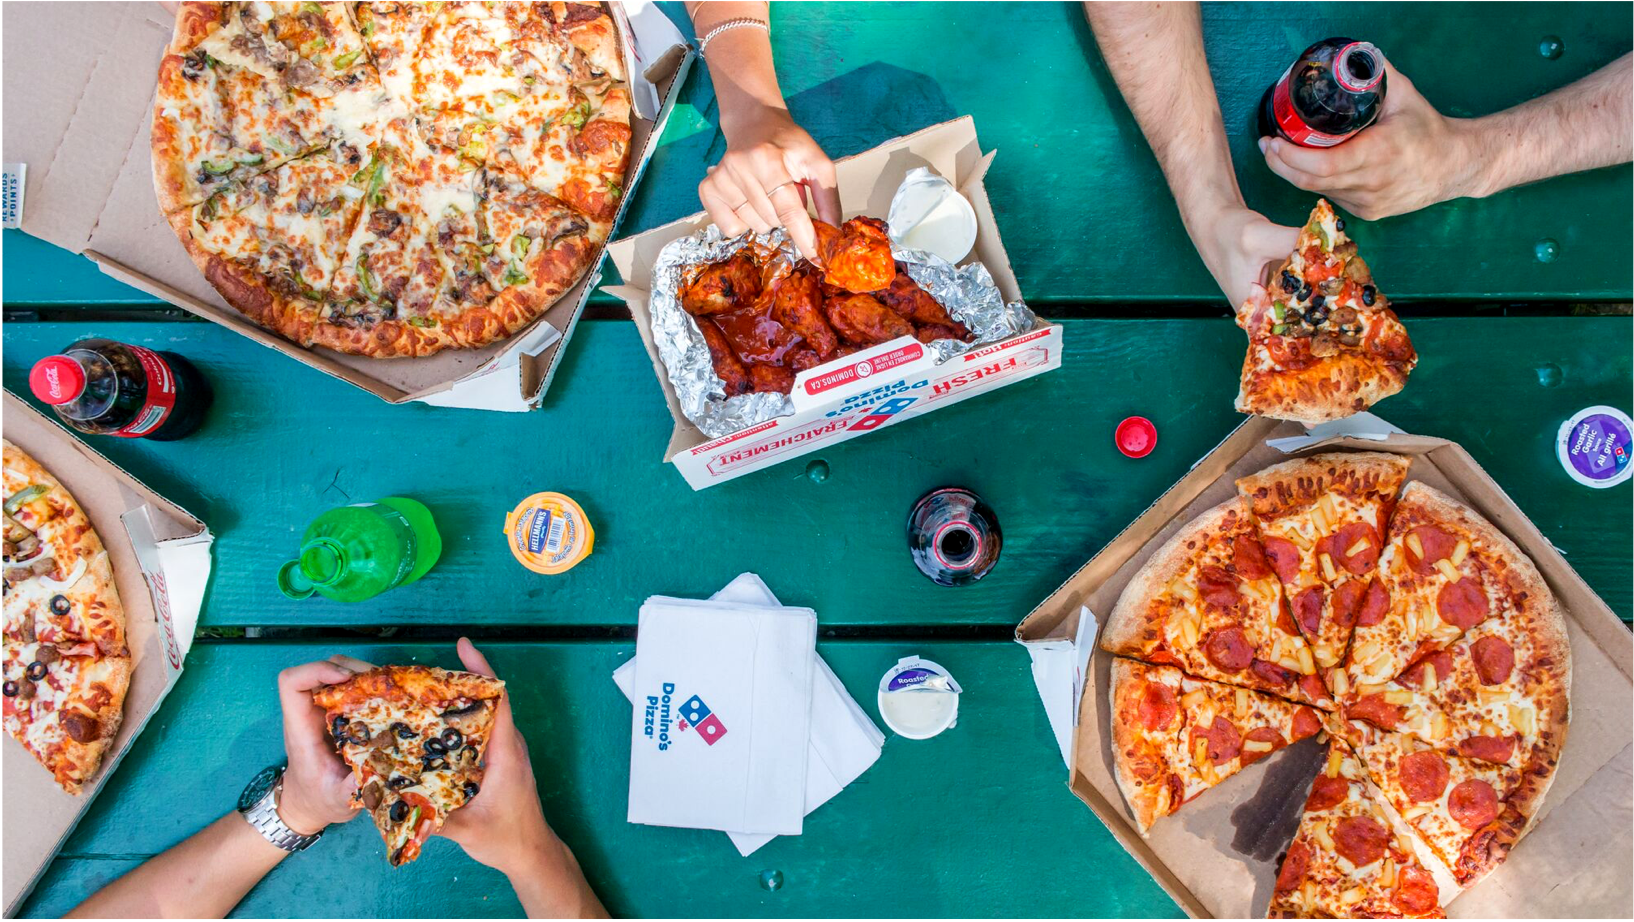 A picture taken from above showing people's hands sharing Domino's pizza and wings